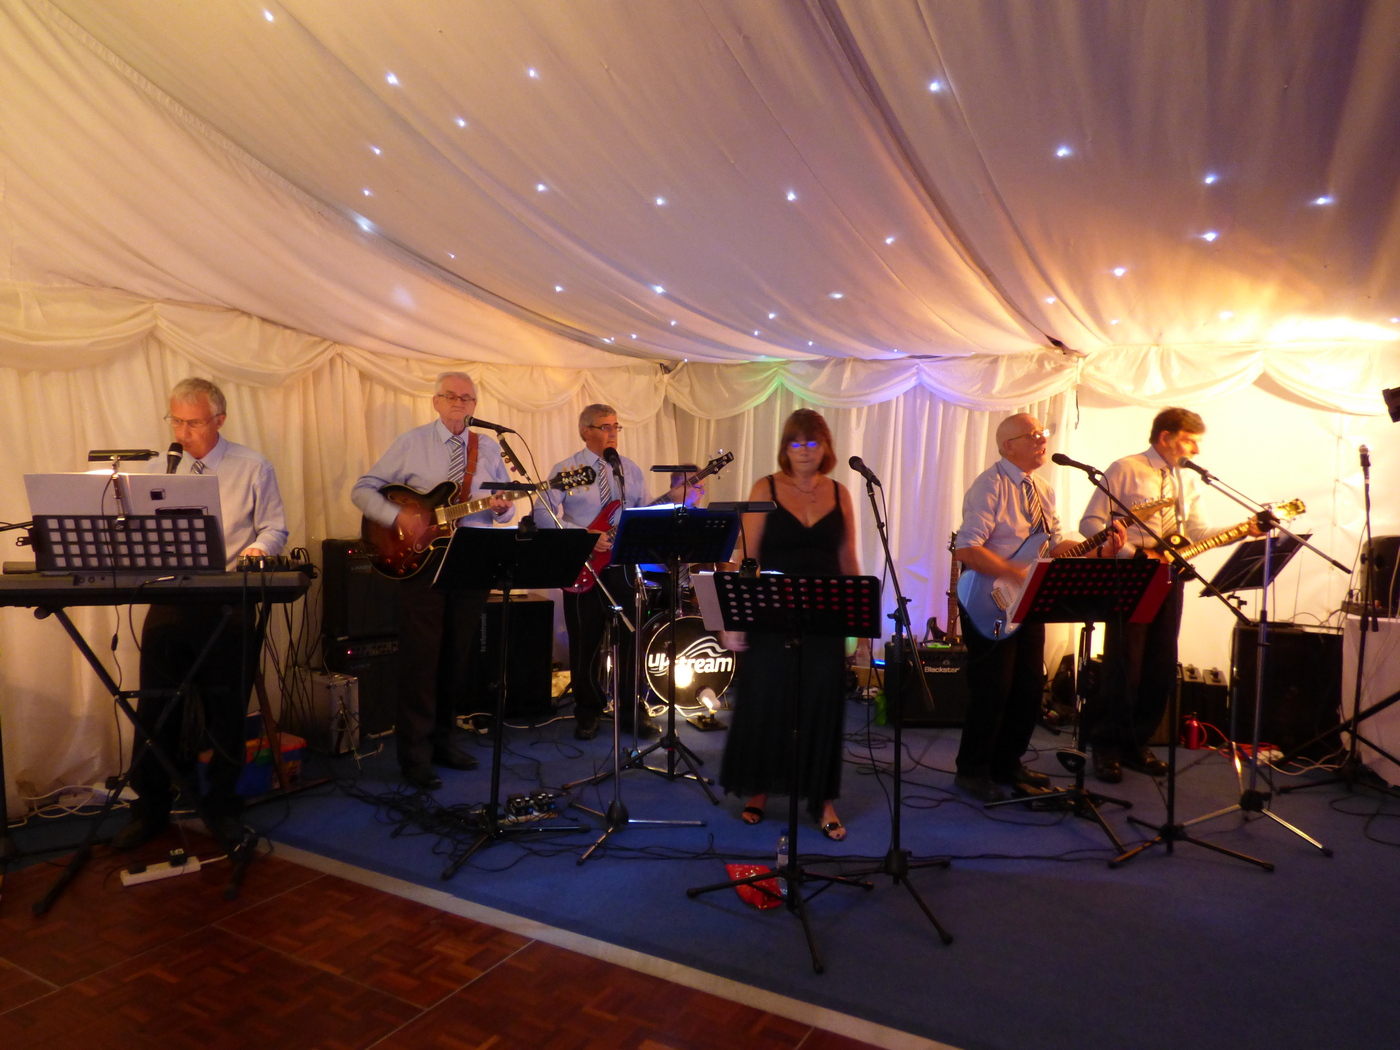 Upstream performing at Rotary event